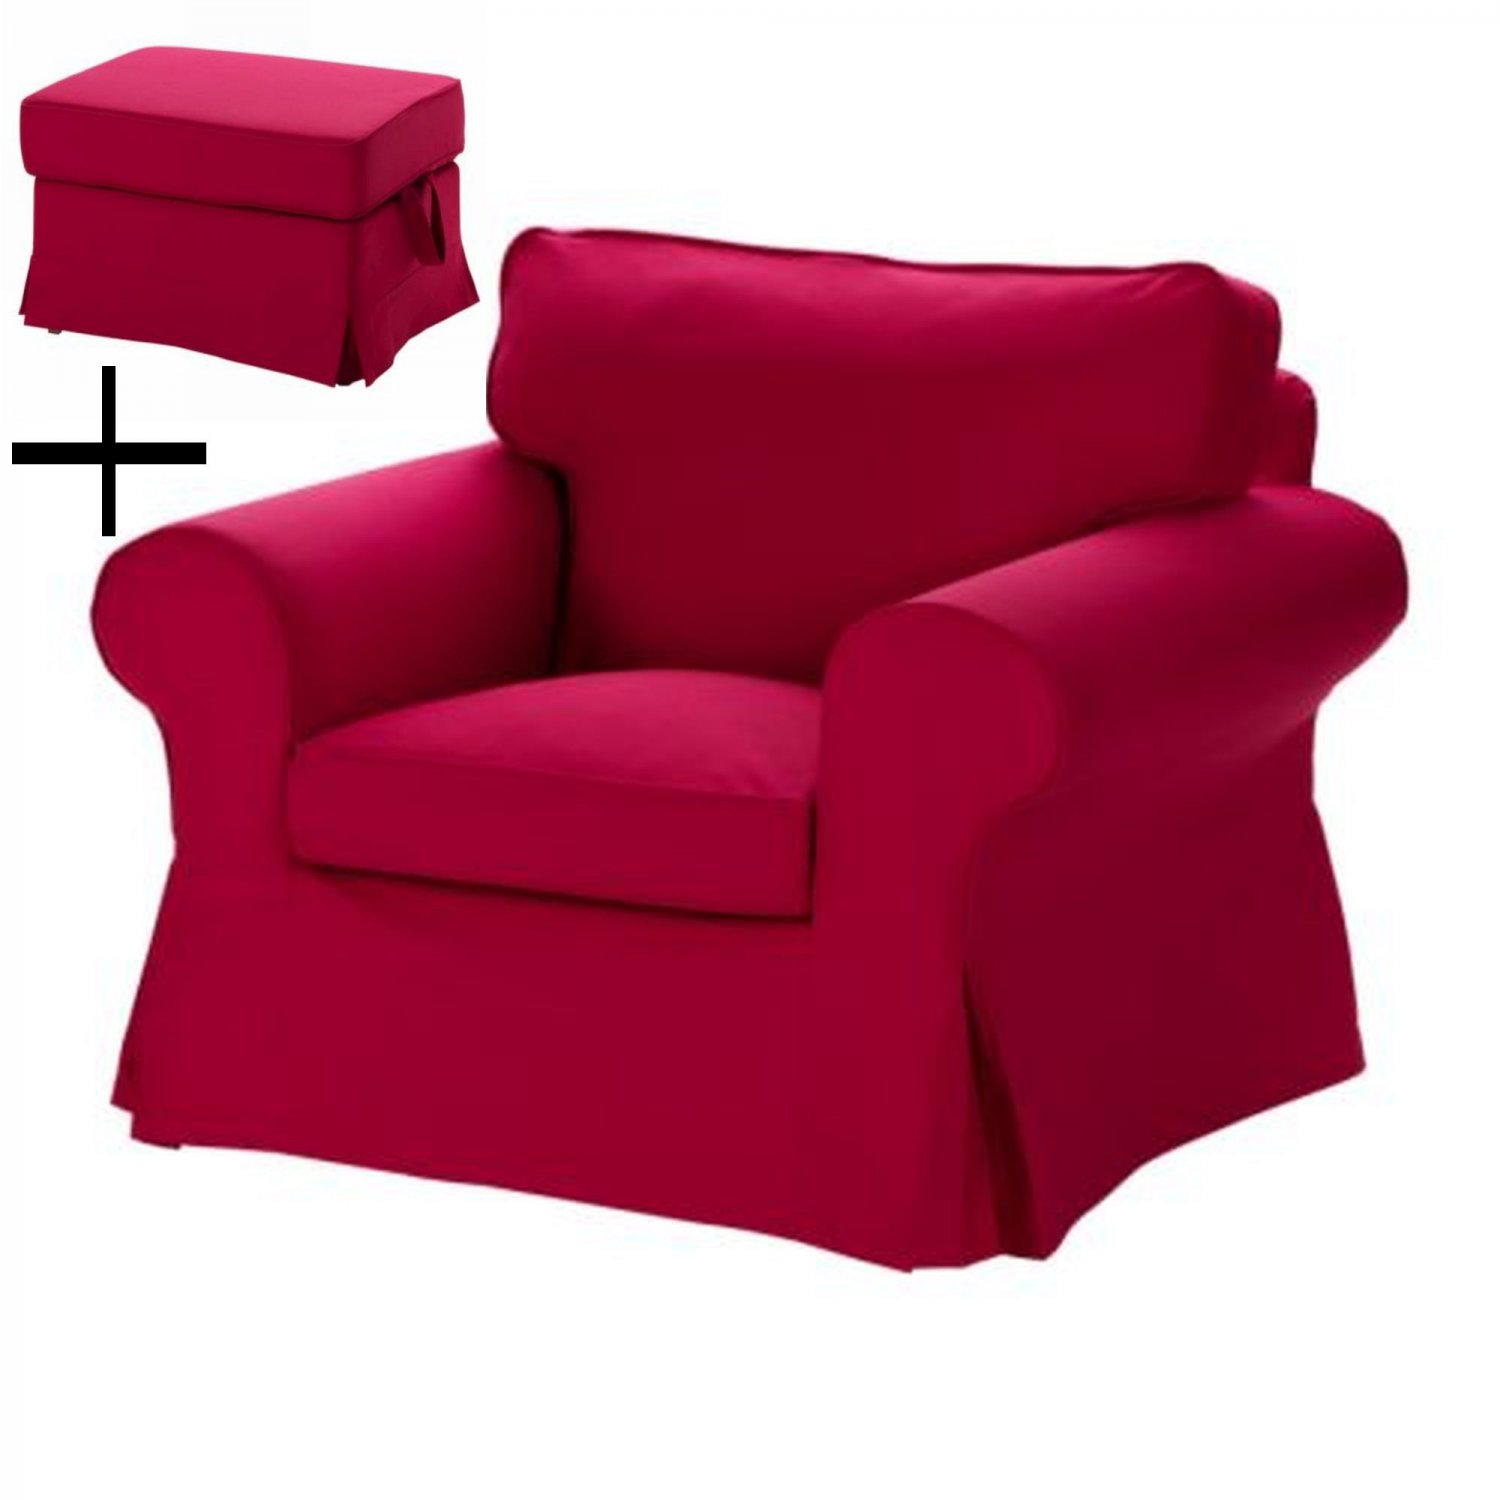 Ikea Ektorp Armchair And Footstool Slipcovers Chair